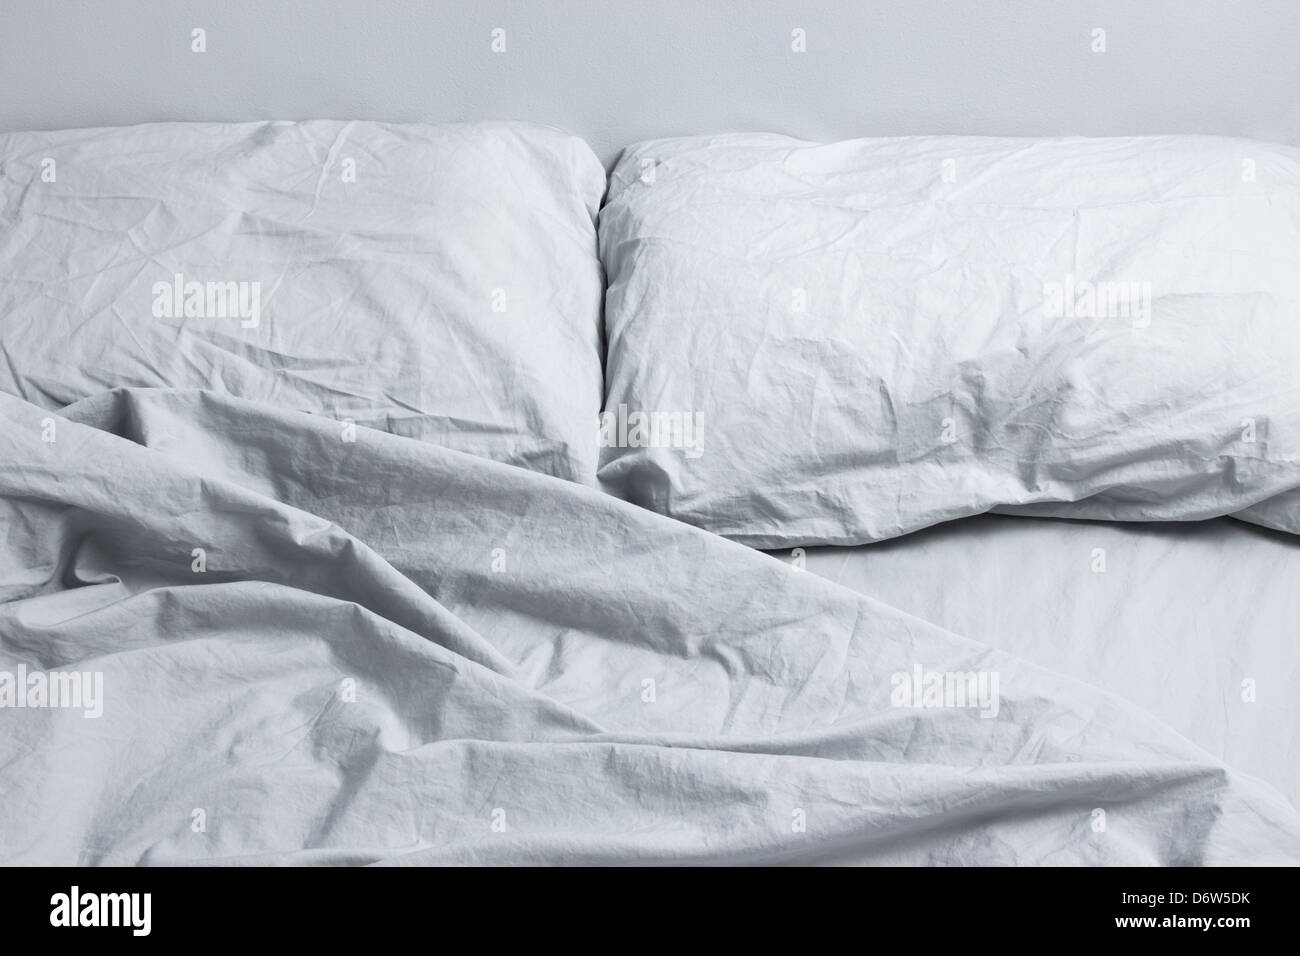 Messy bed with two pillows, gray bed linen. - Stock Image